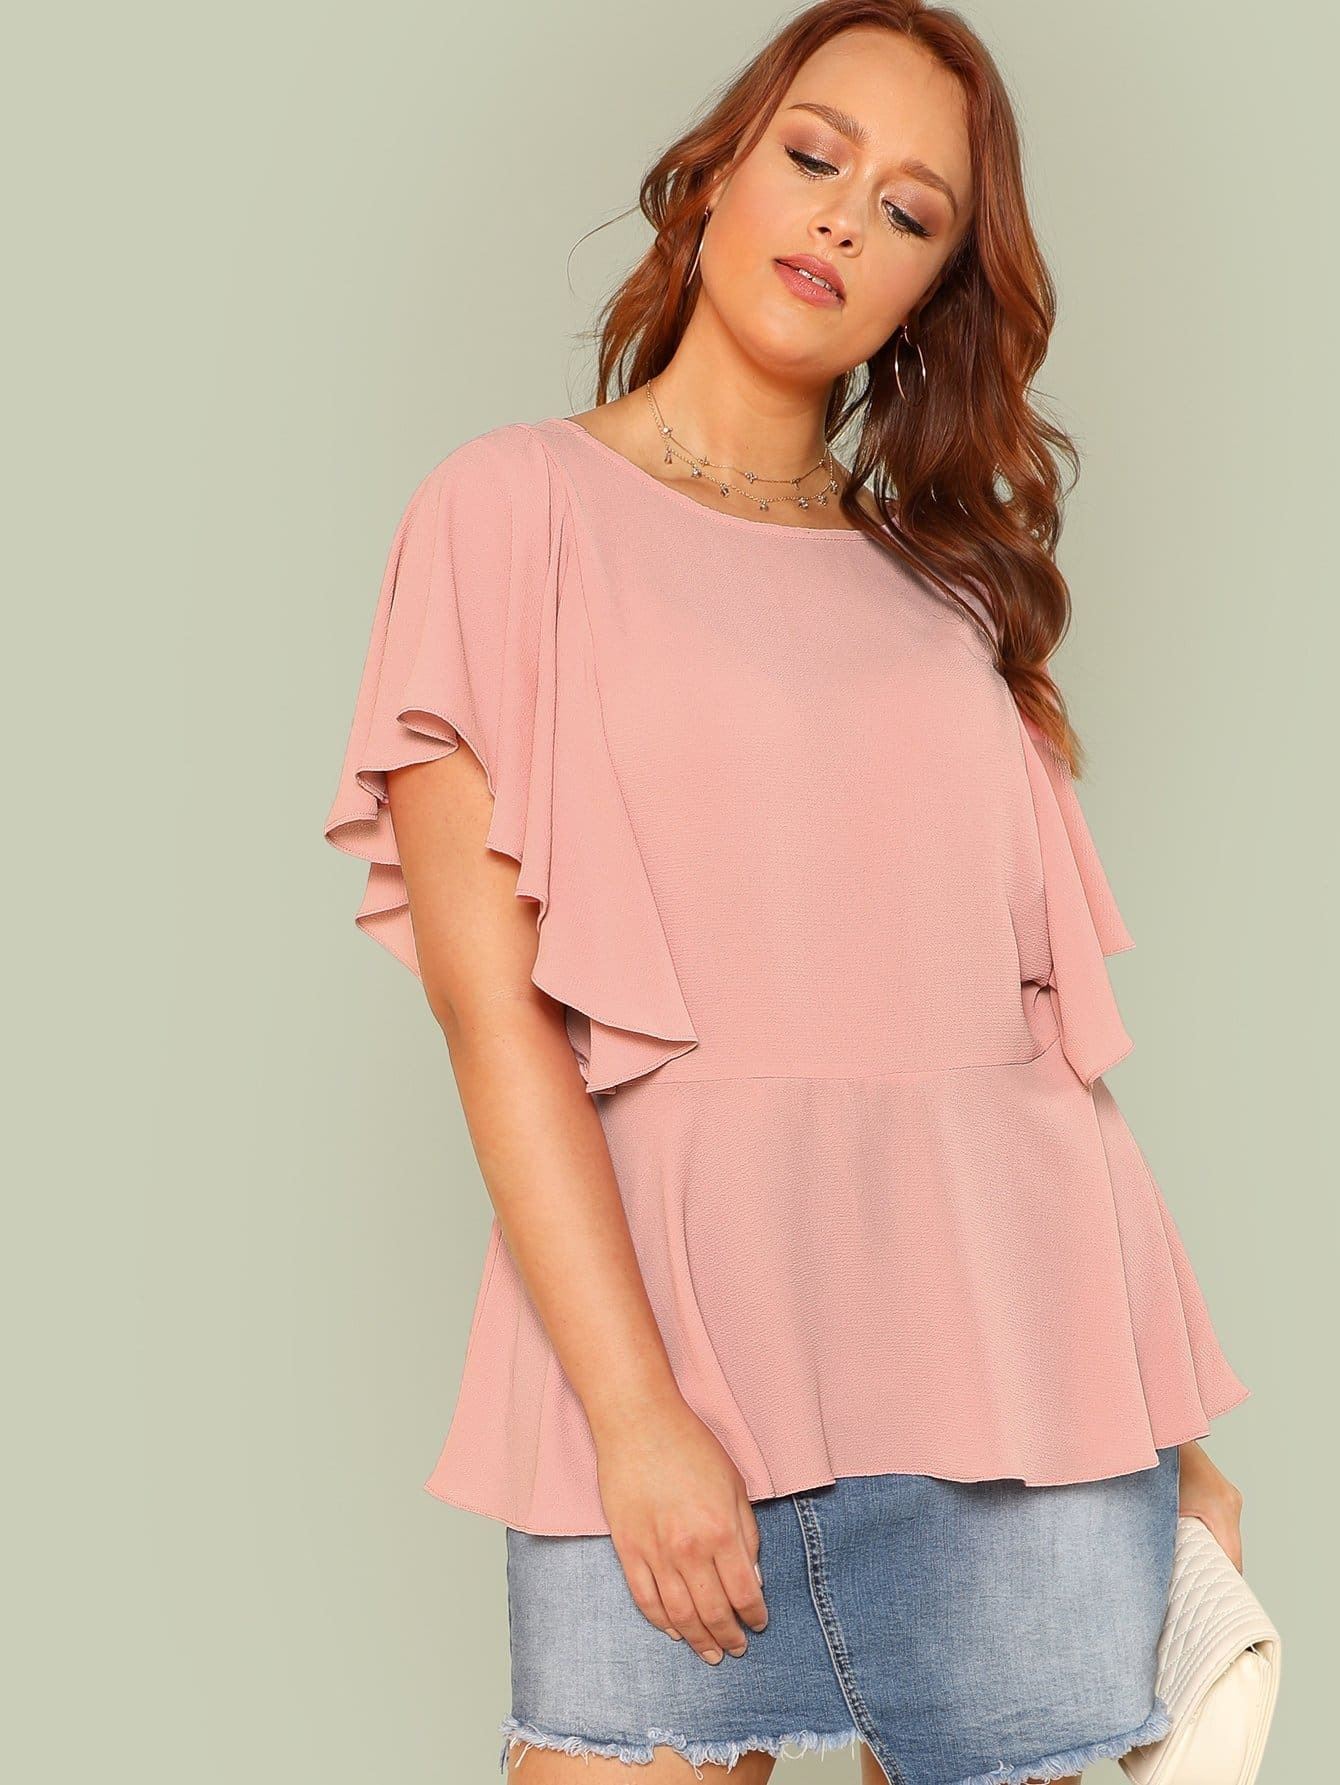 Layered Ruffle Trim Solid Top lace trim solid top